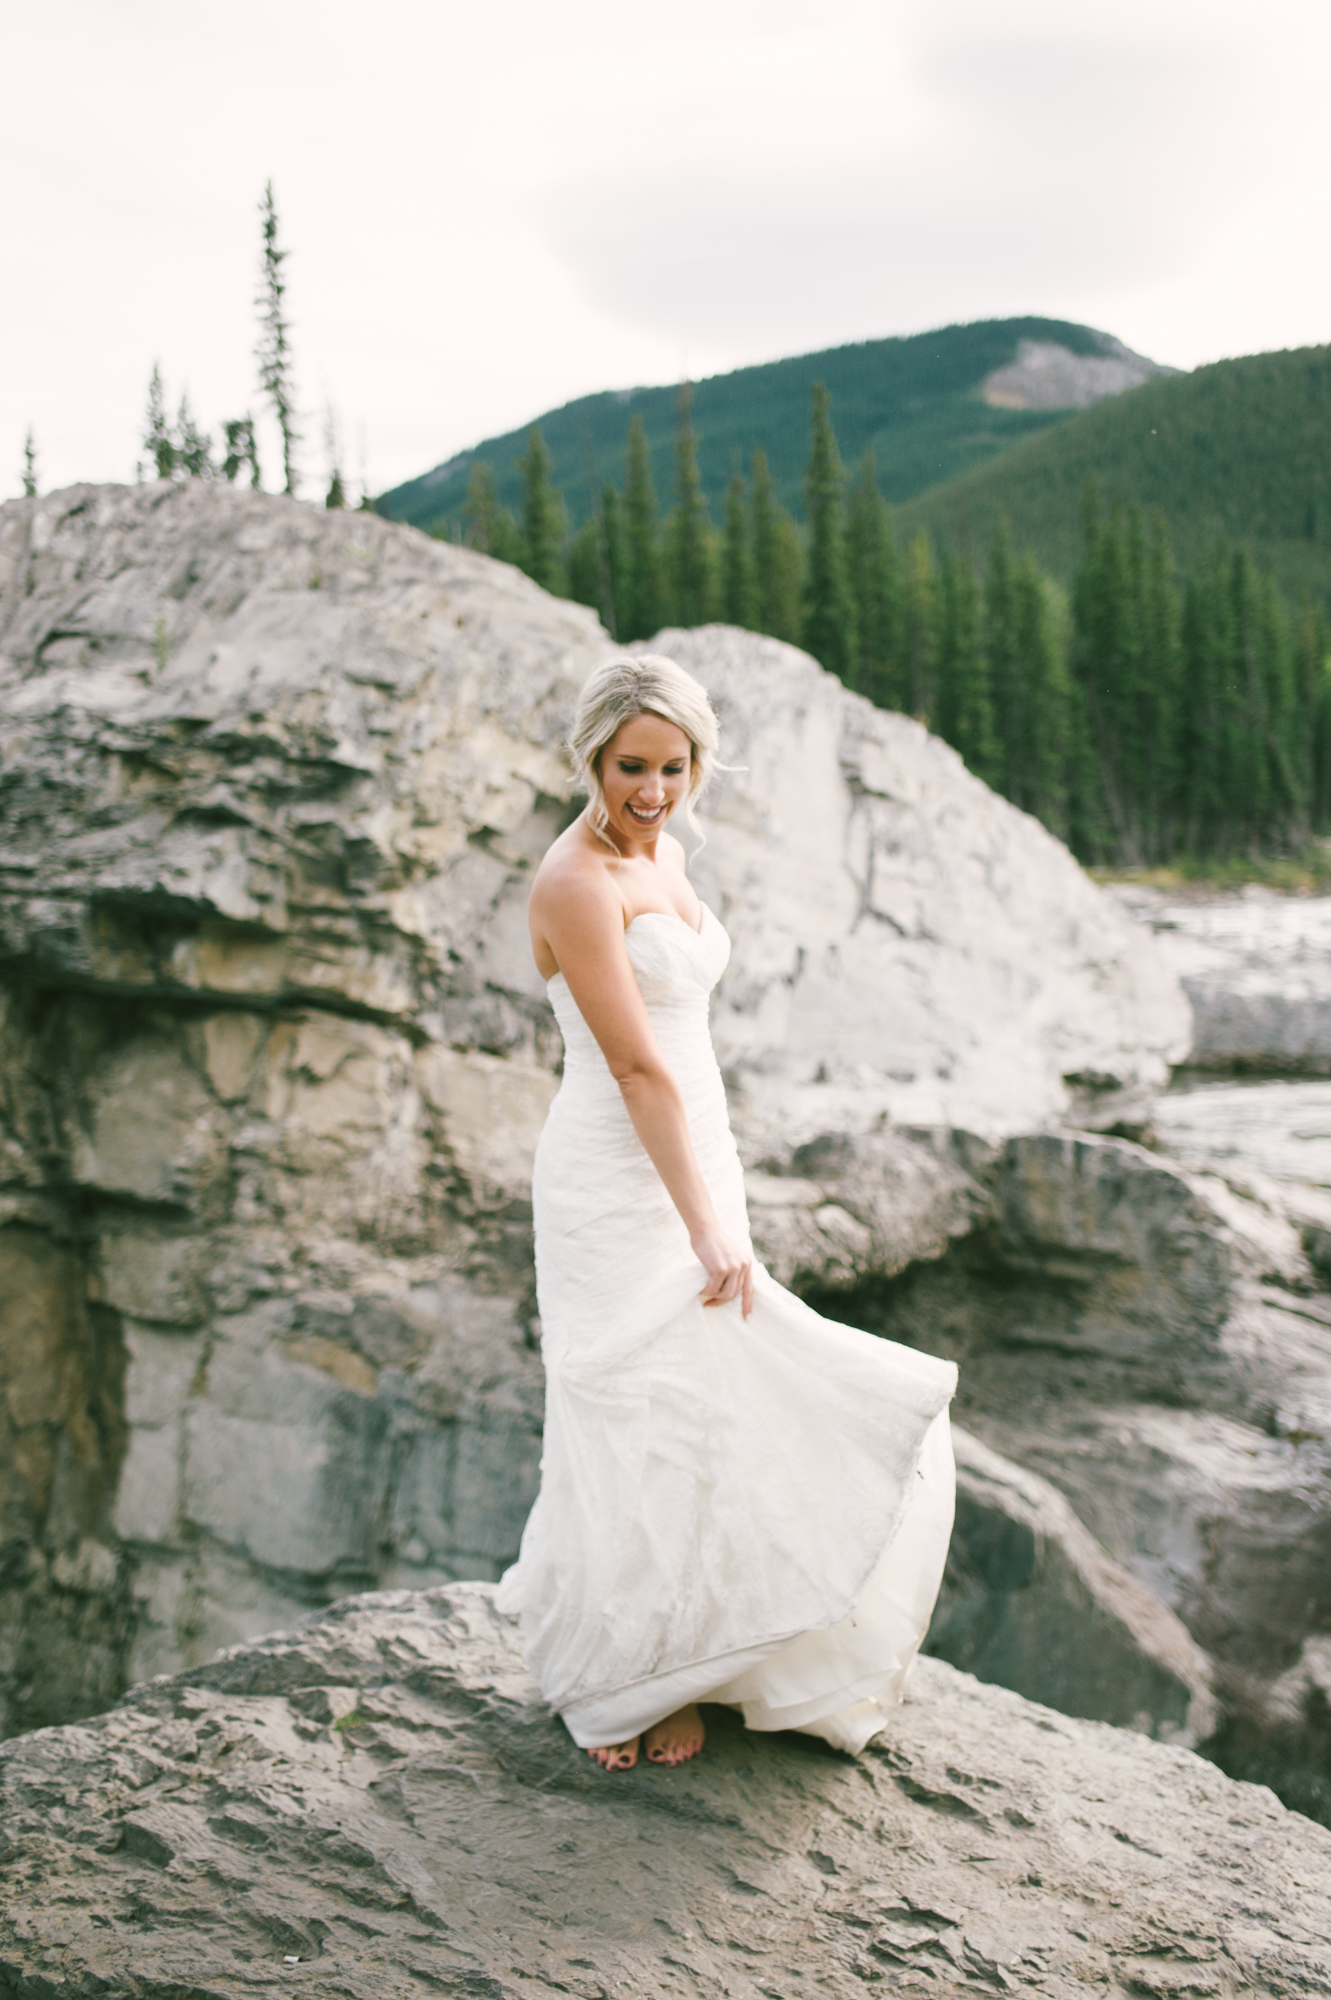 Rocky Mountain Banff Calgary Alberta Wedding-Jessika Hunter Photo-68.JPG